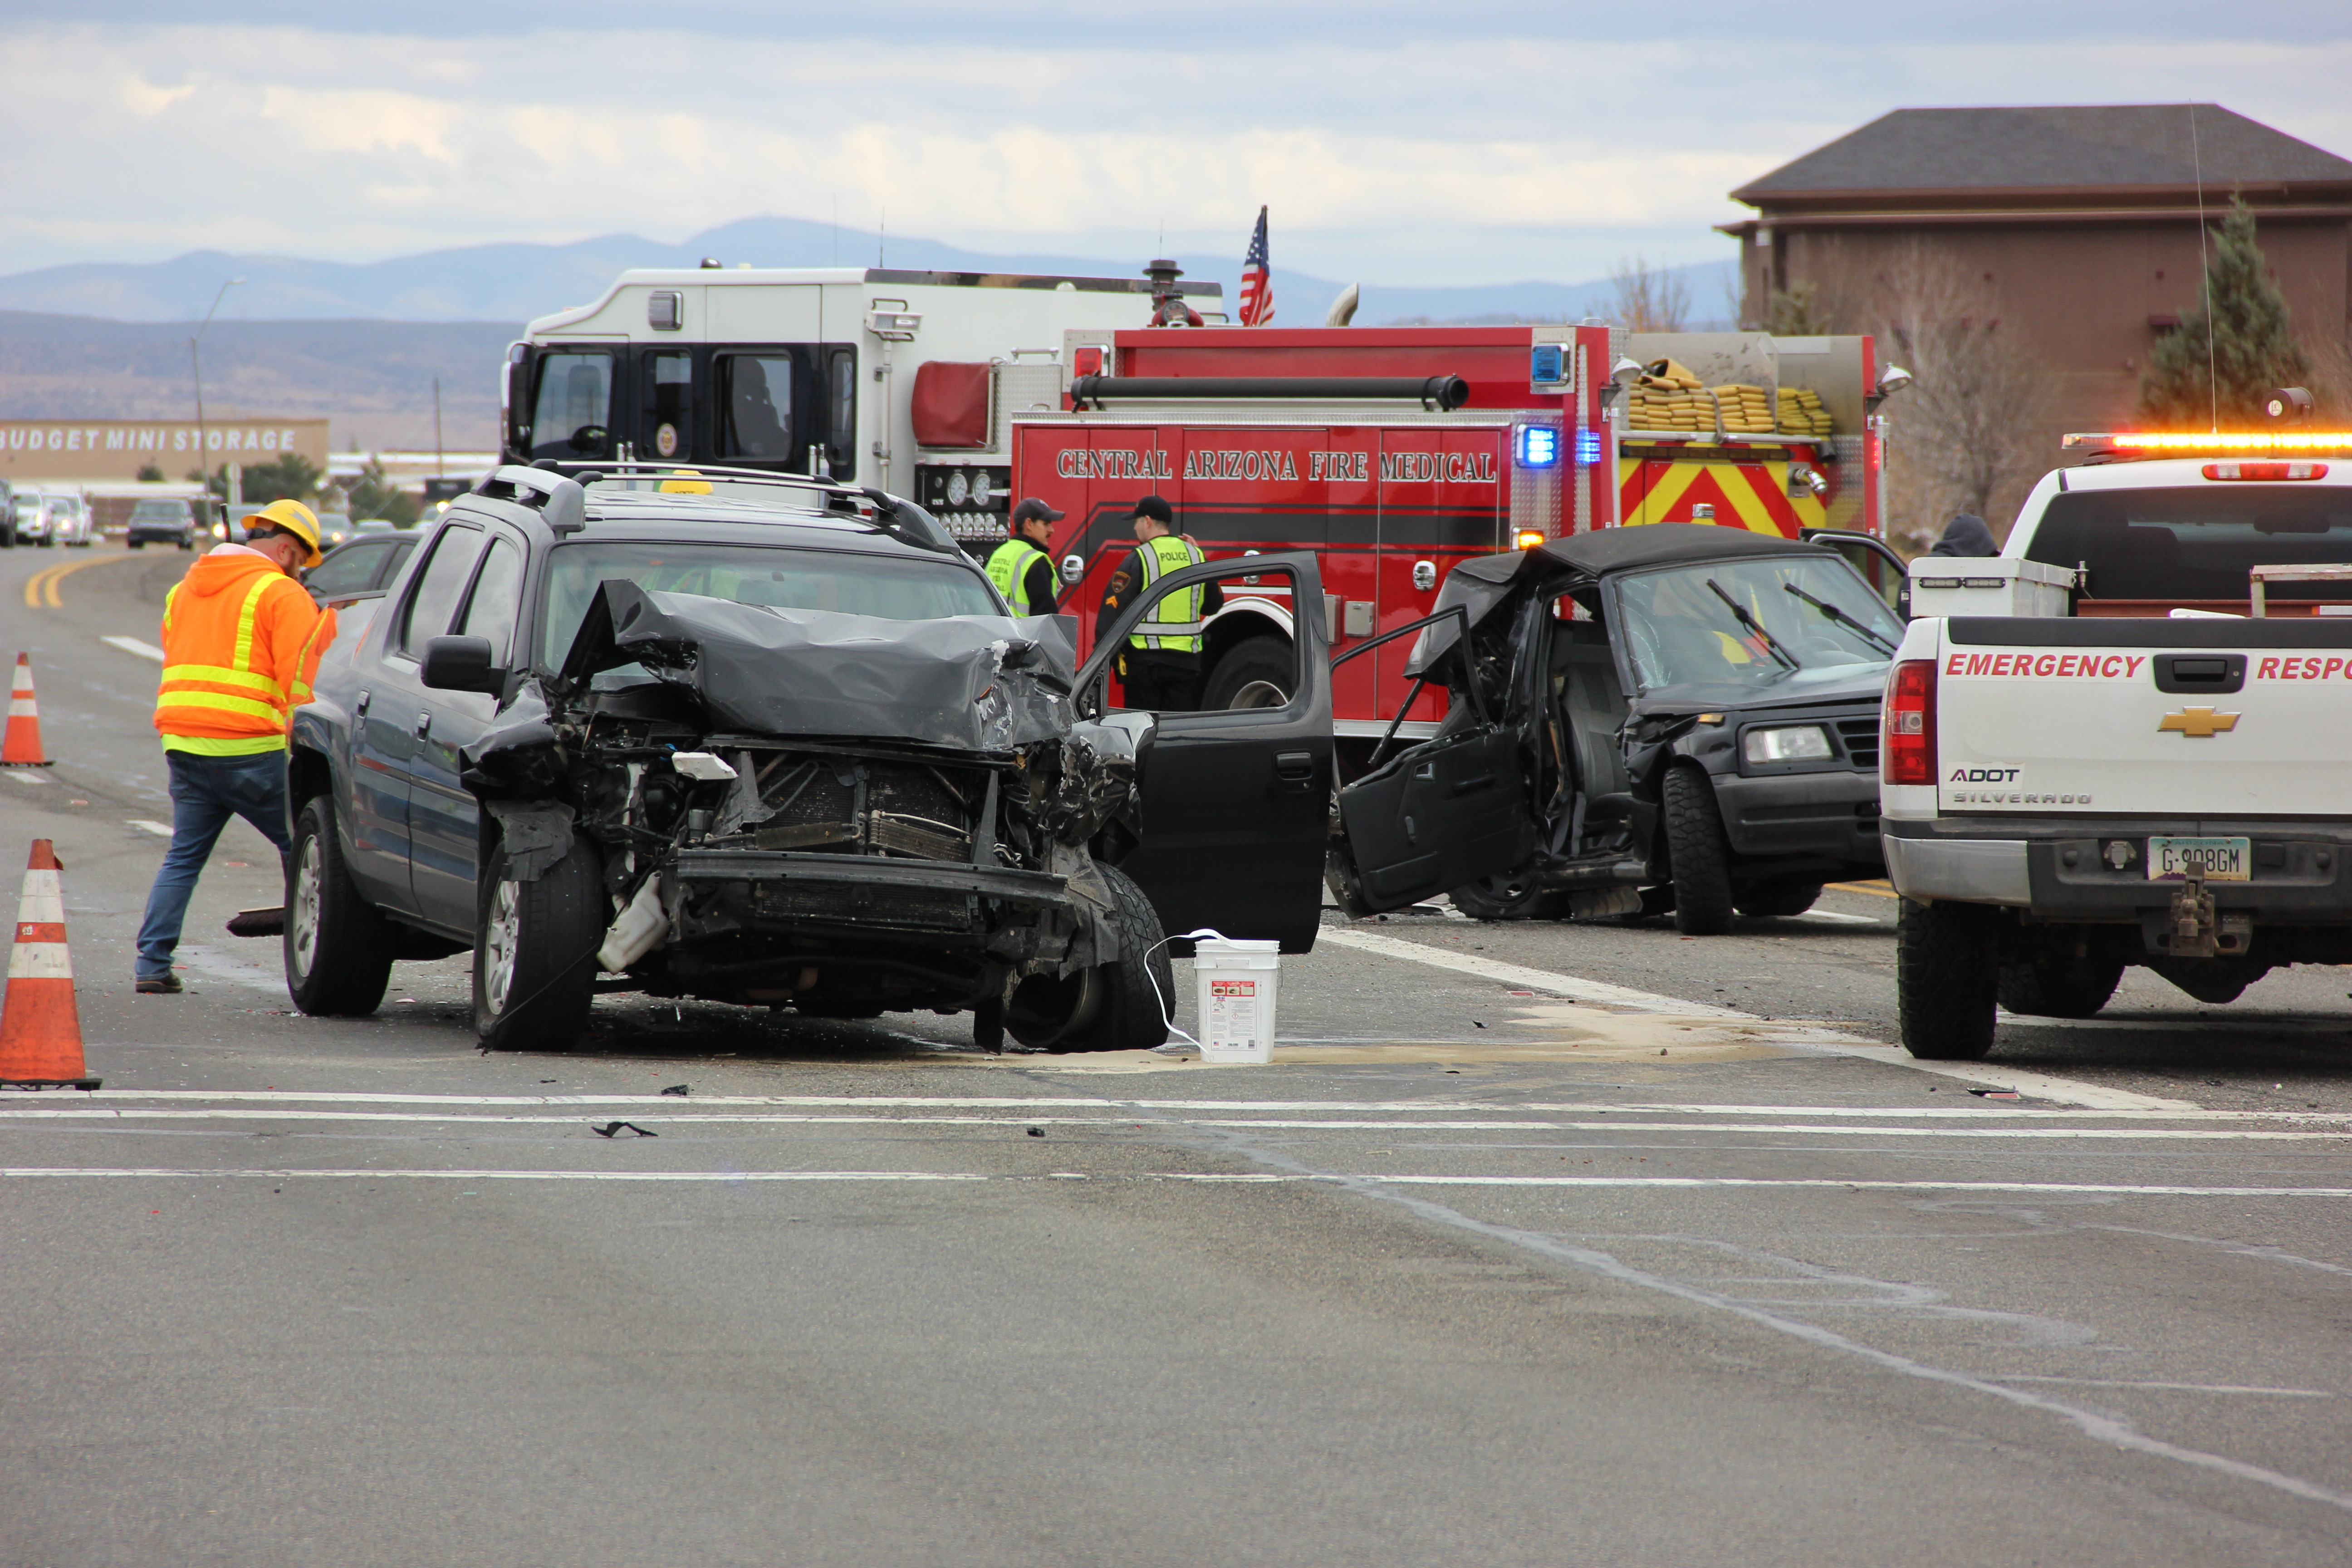 Police: Impaired Driver Causes 5-vehicle Crash On Highway